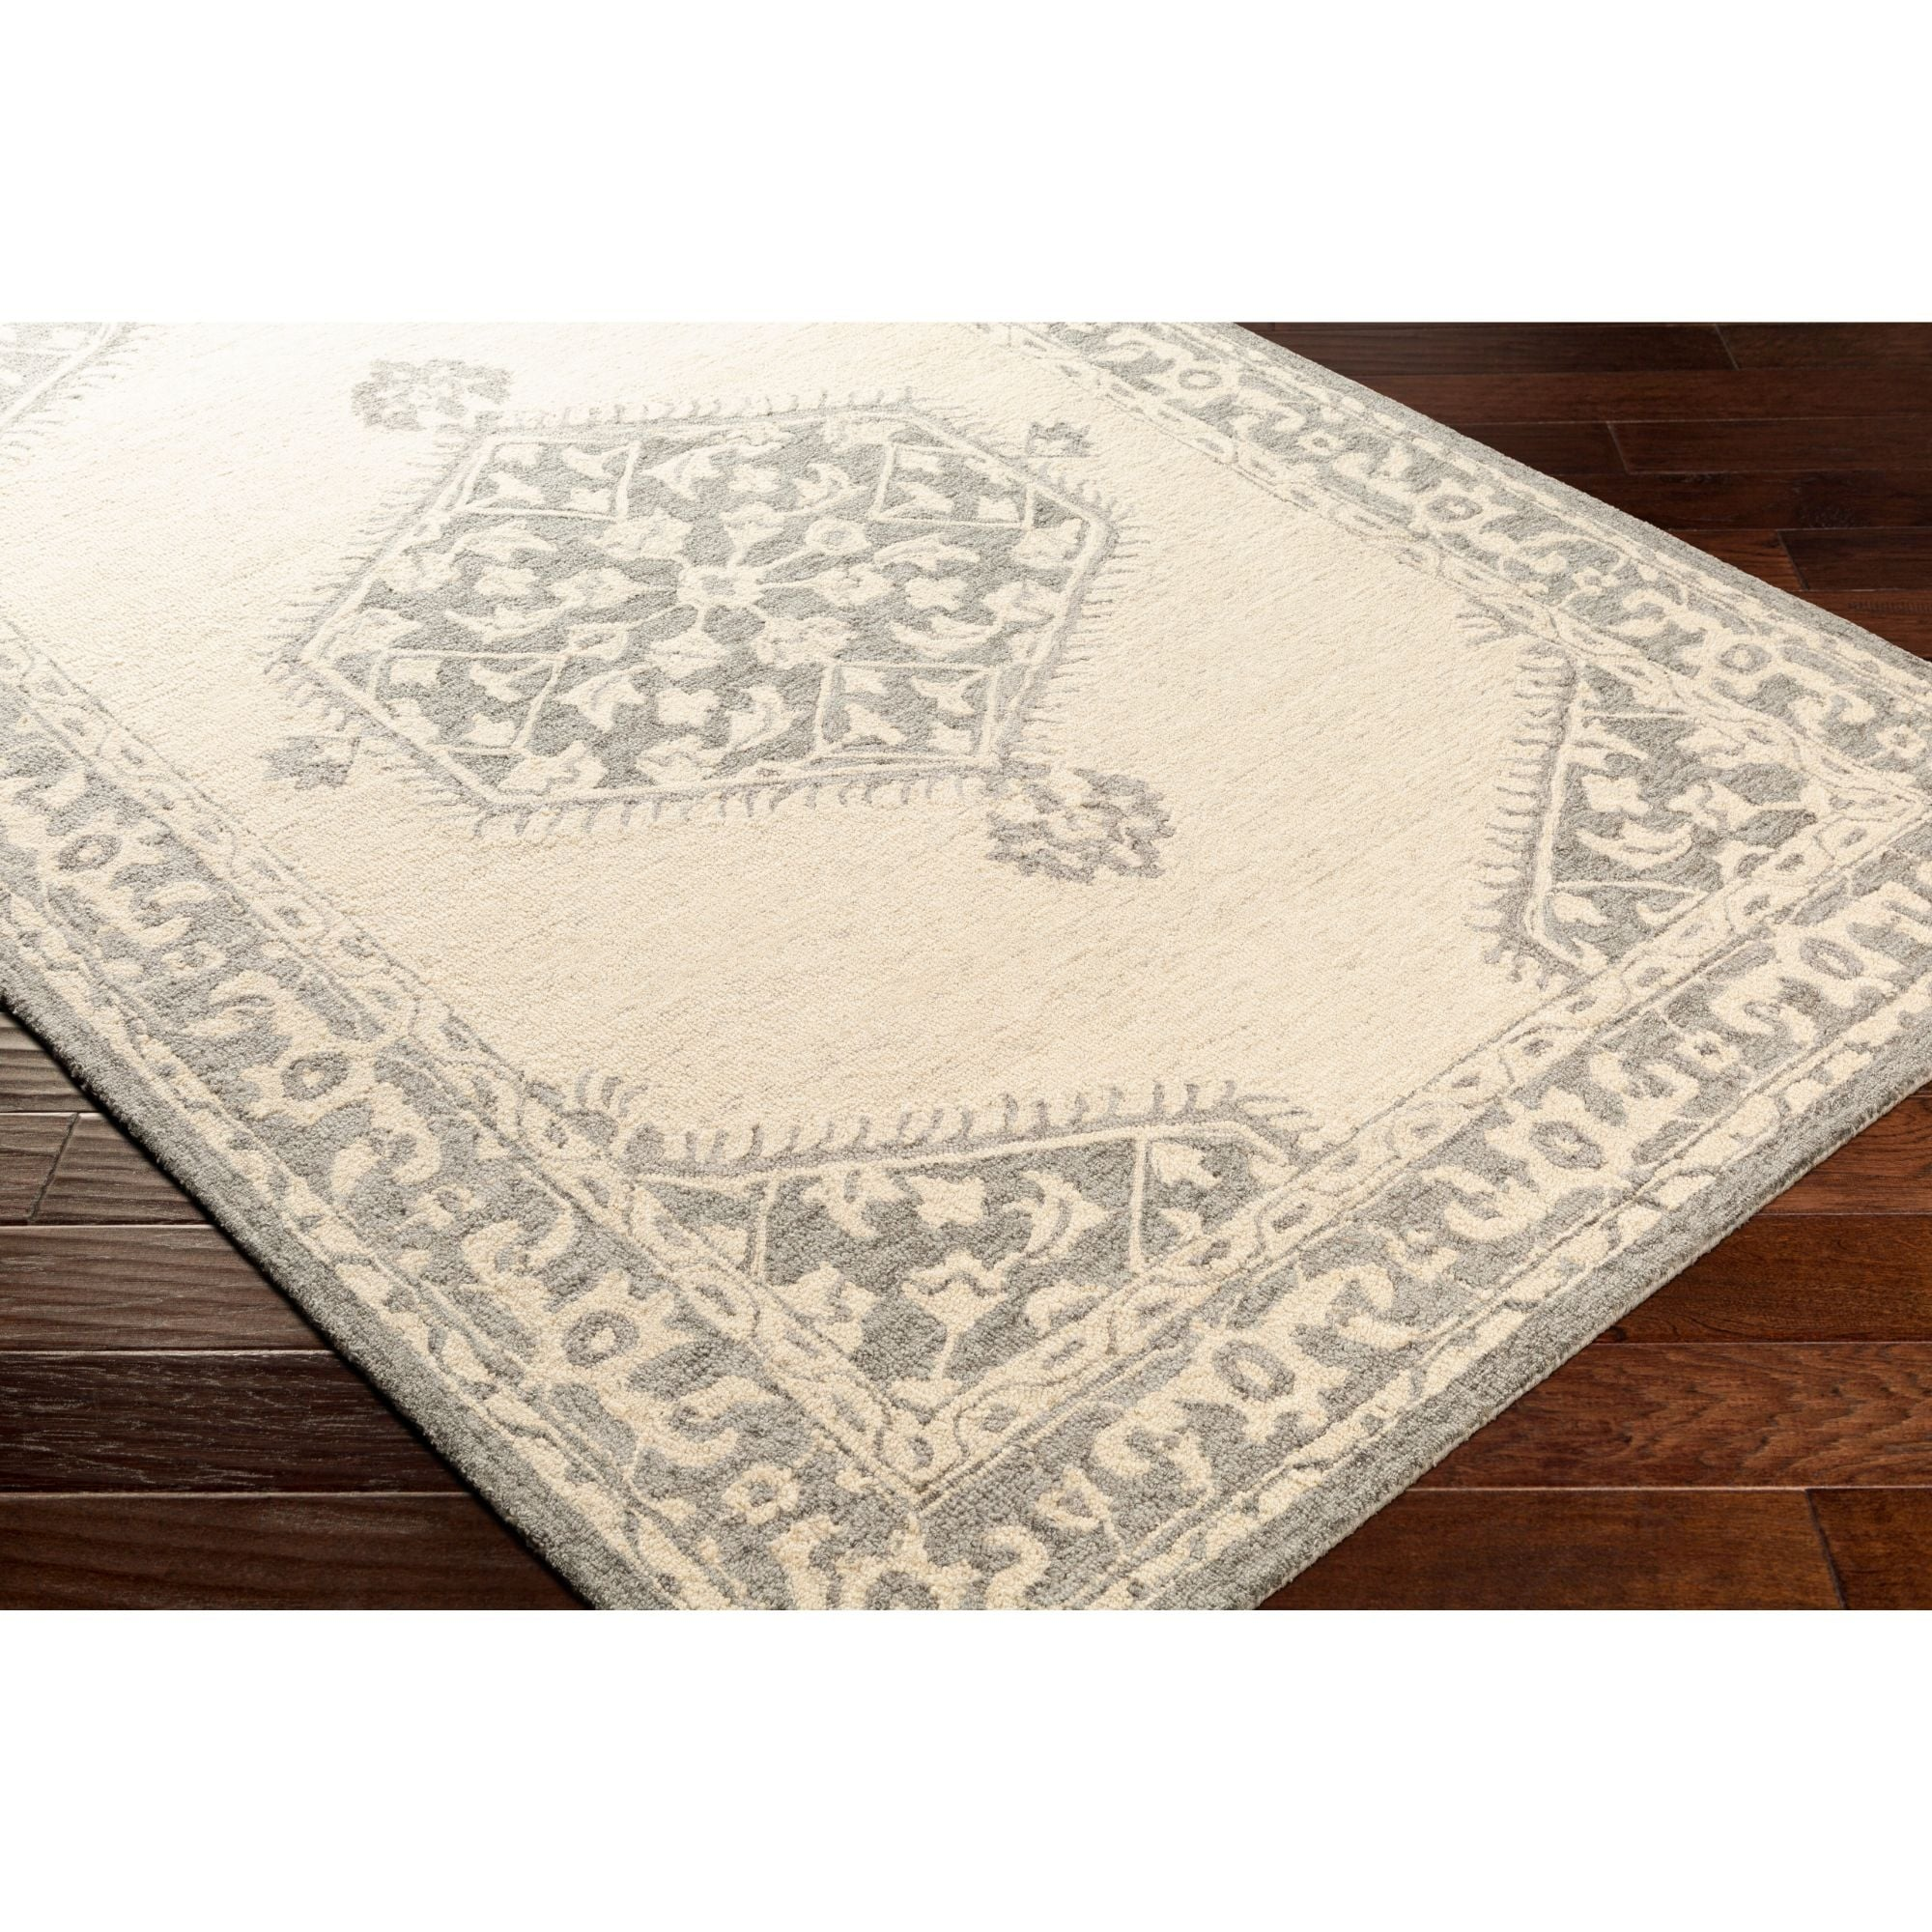 9 X 12 Traditional Style Charcoal Gray And Beige Rectangular Area Throw Rug Overstock 29565409